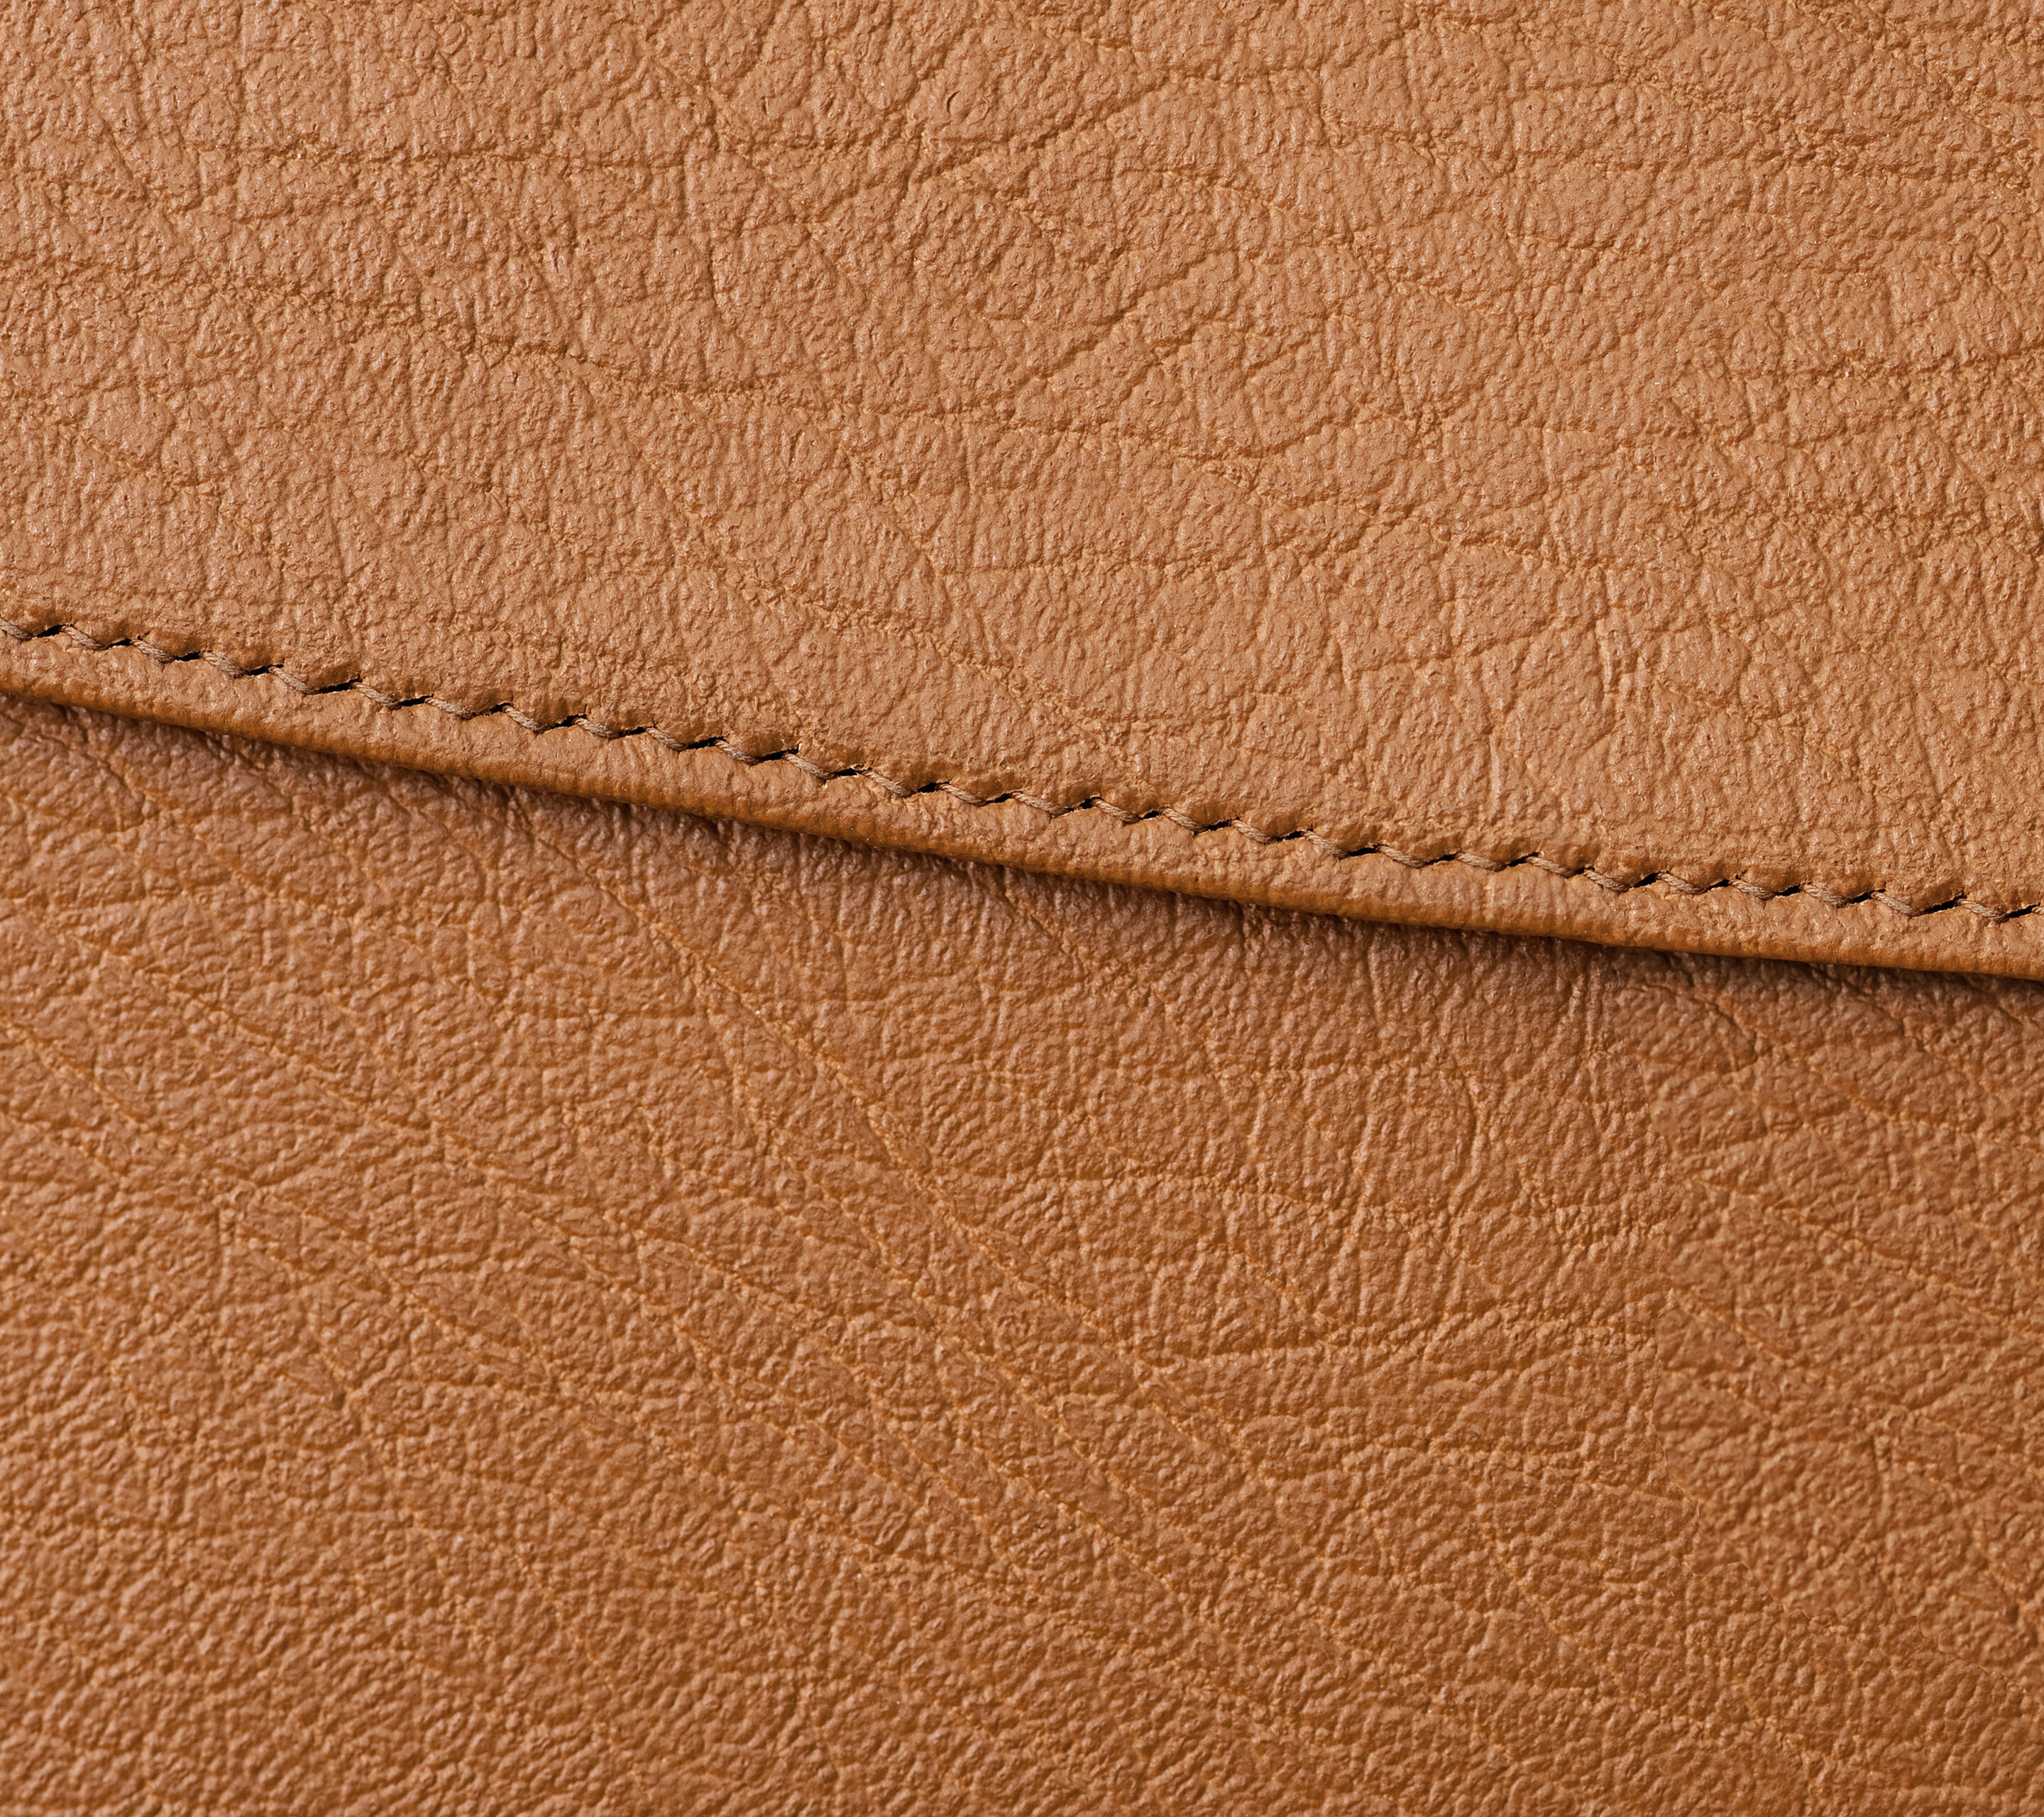 Download the official LG G4 wallpapers here, leather ...